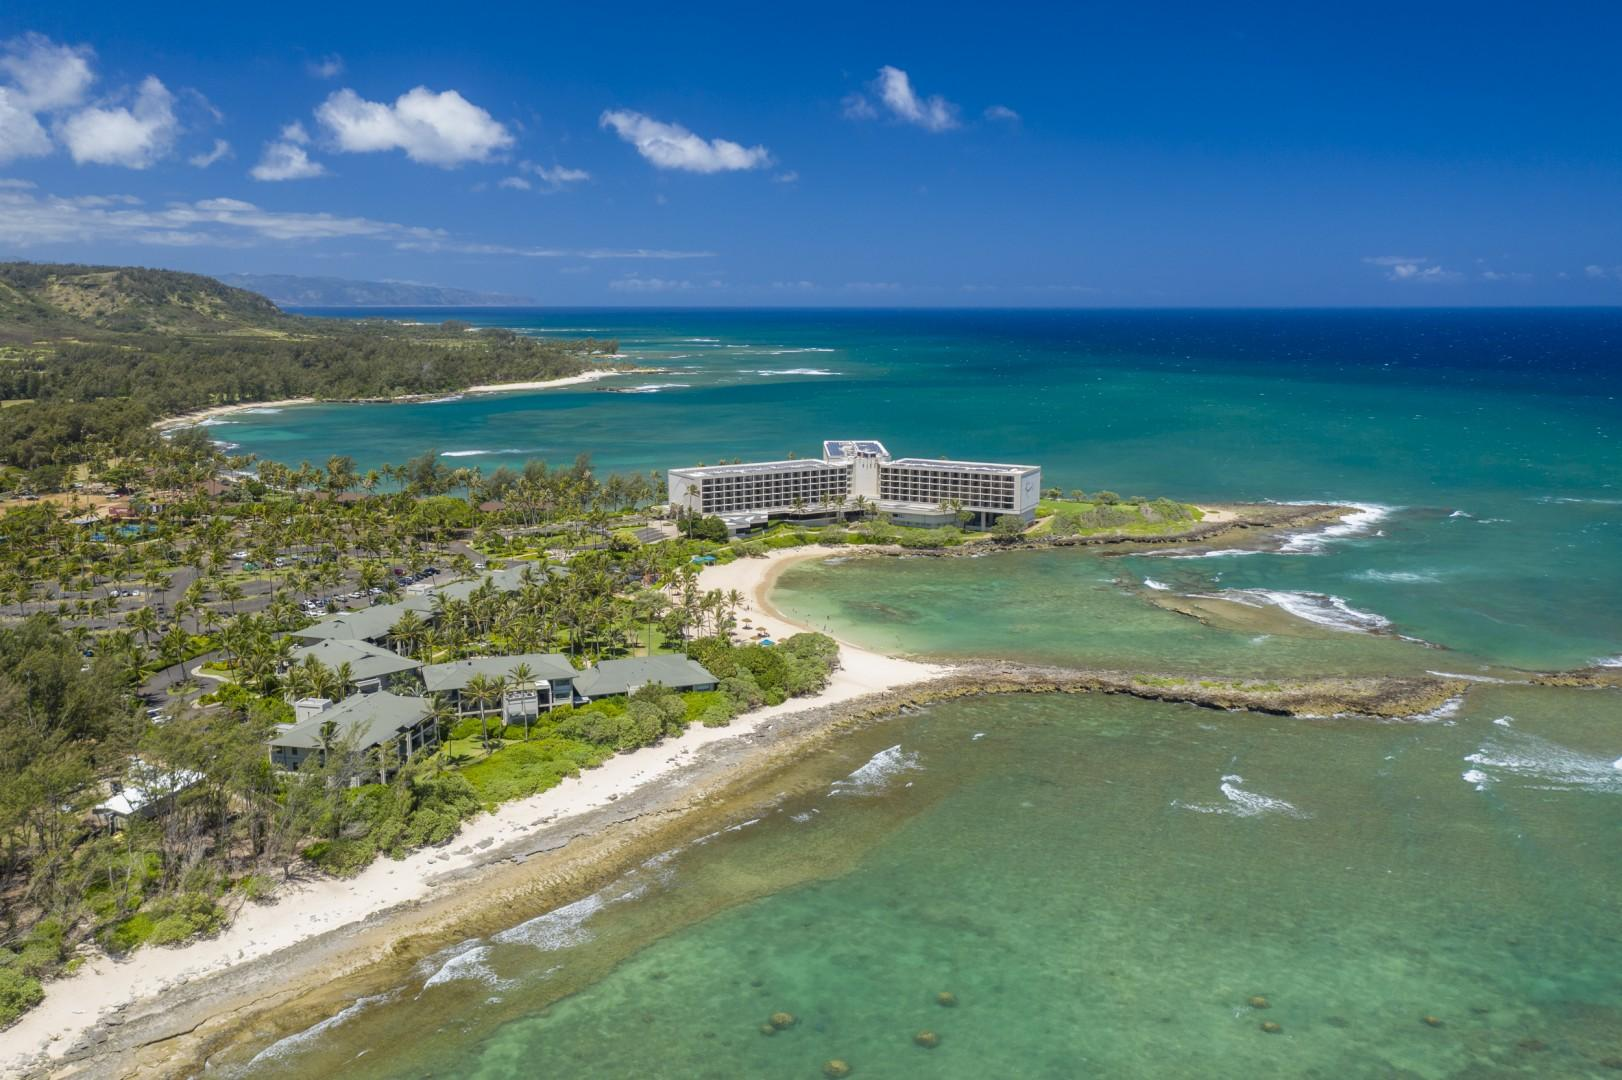 Located adjacent to Turtle Bay Hotel